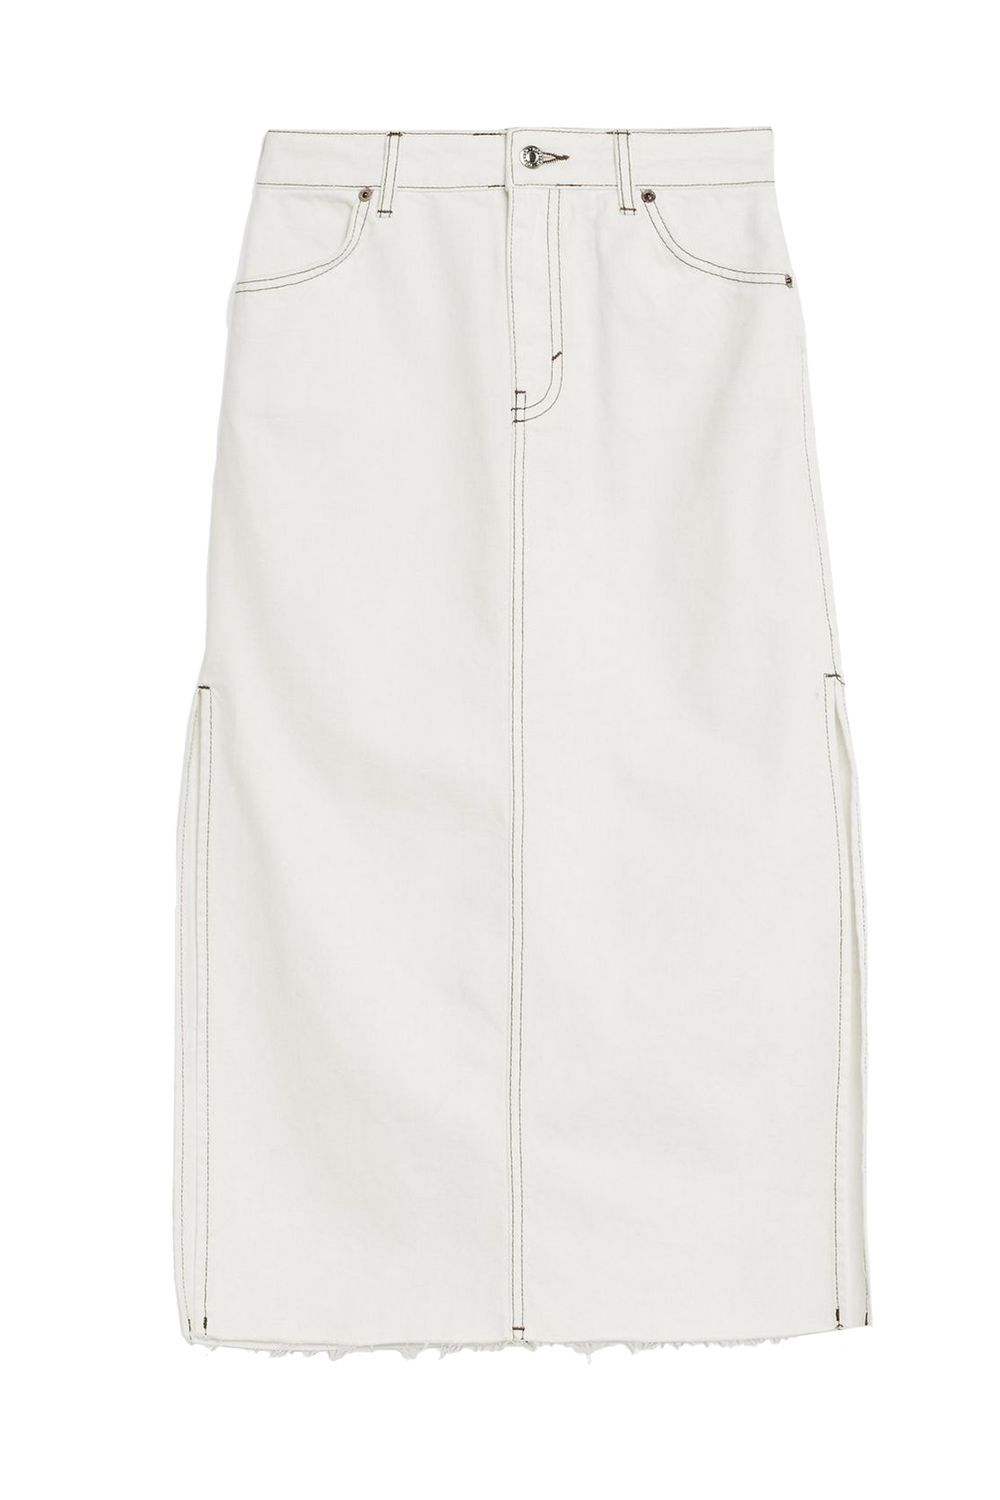 A White Denim Midi Skirt Topshop topshop.com $68.00 SHOP IT You've officially retired your too-short denim miniskirt  for good? As a replacement, try this Topshop piece, which is semi-sexy (peep those side slits) but modest thanks to the midi length.